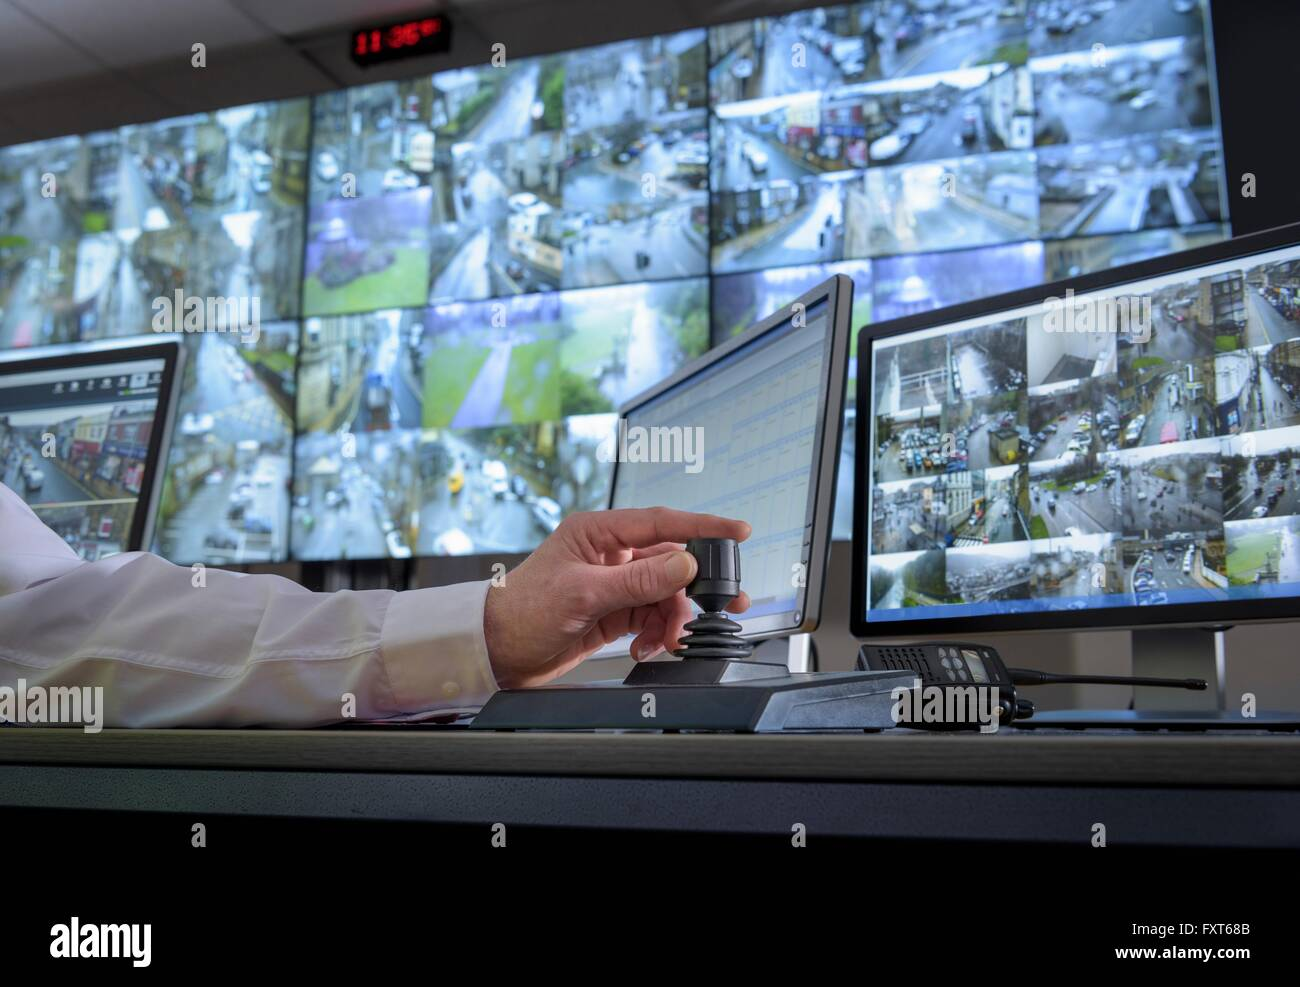 Detail of hand on camera control joystick in control room with video wall - Stock Image